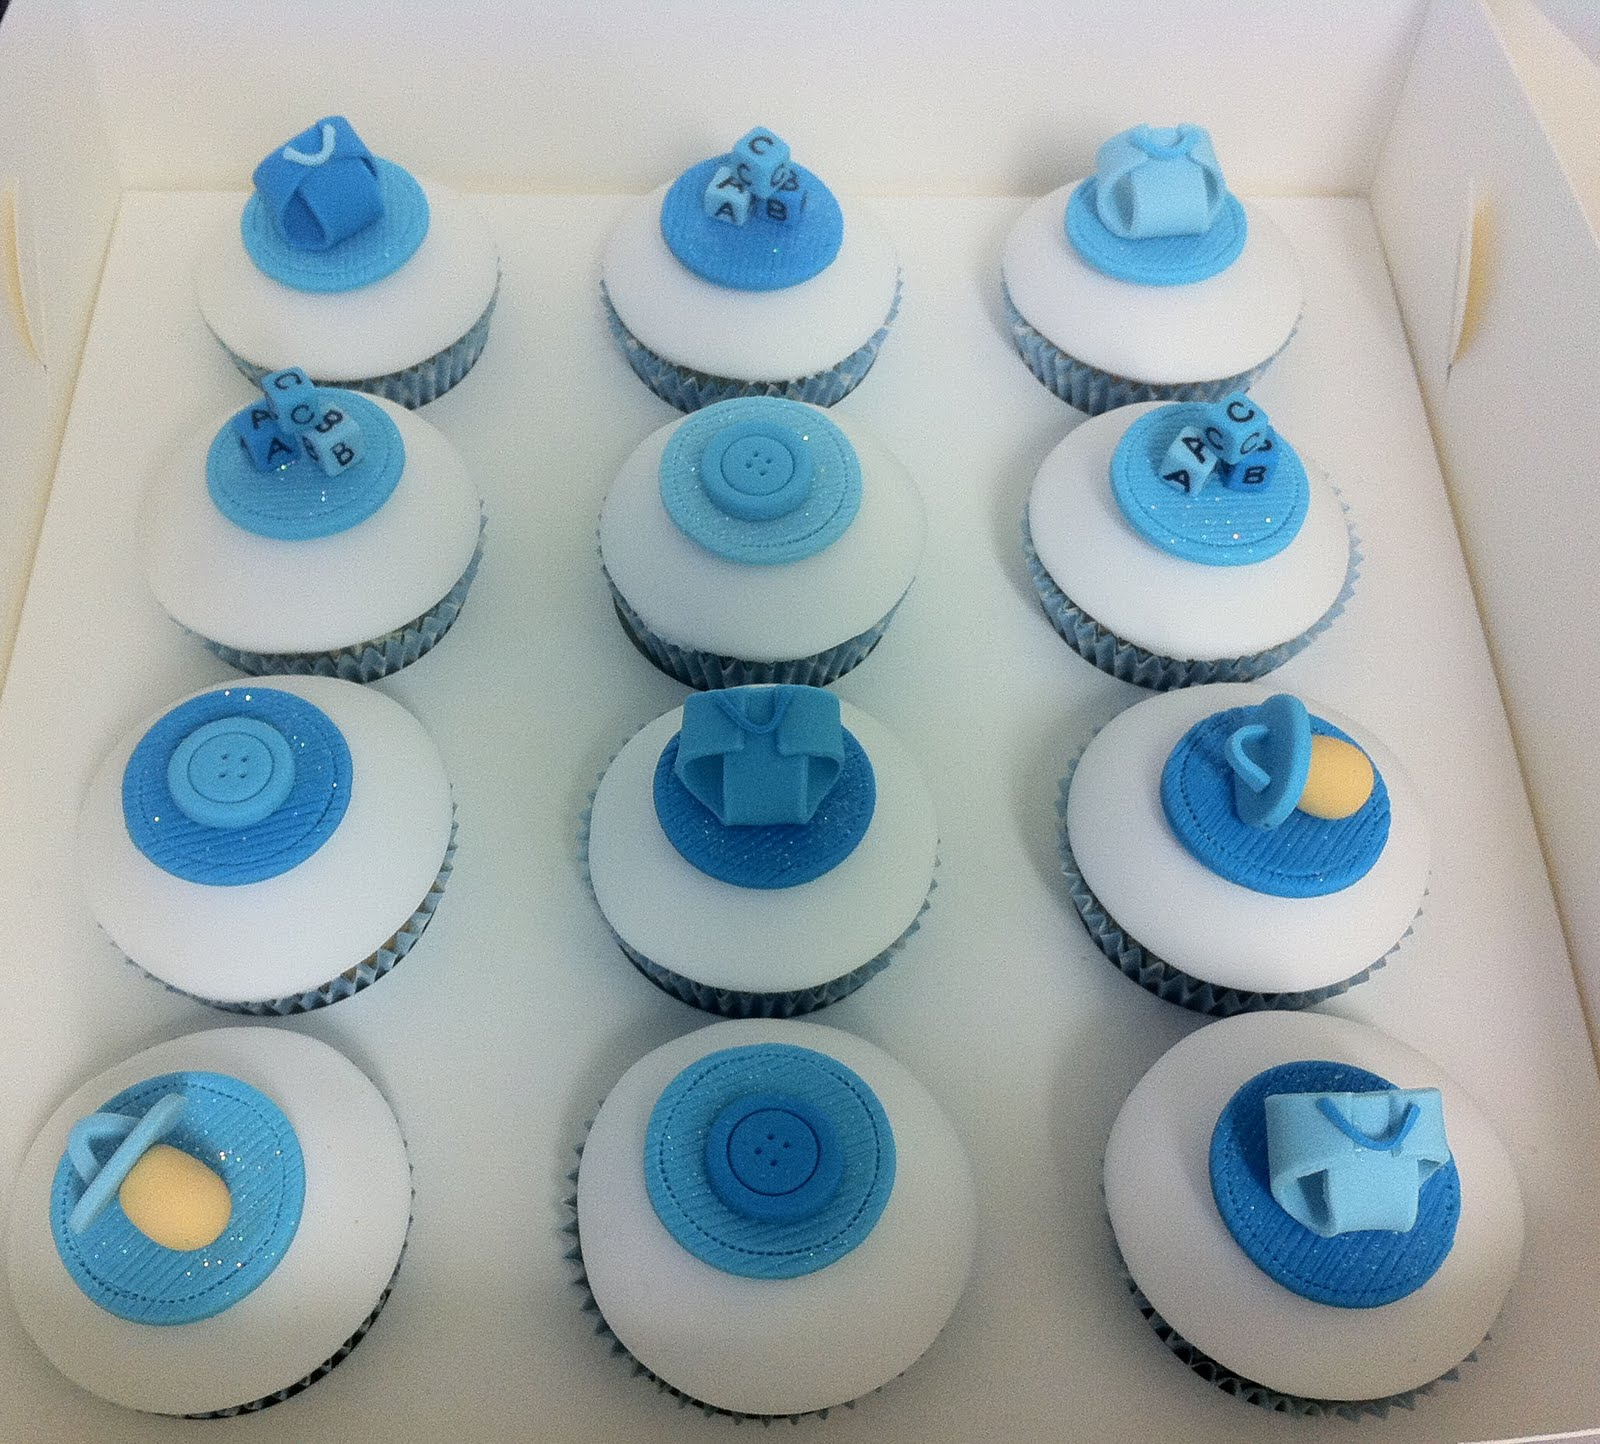 of our cake decorating supplies to create this cupcakes including